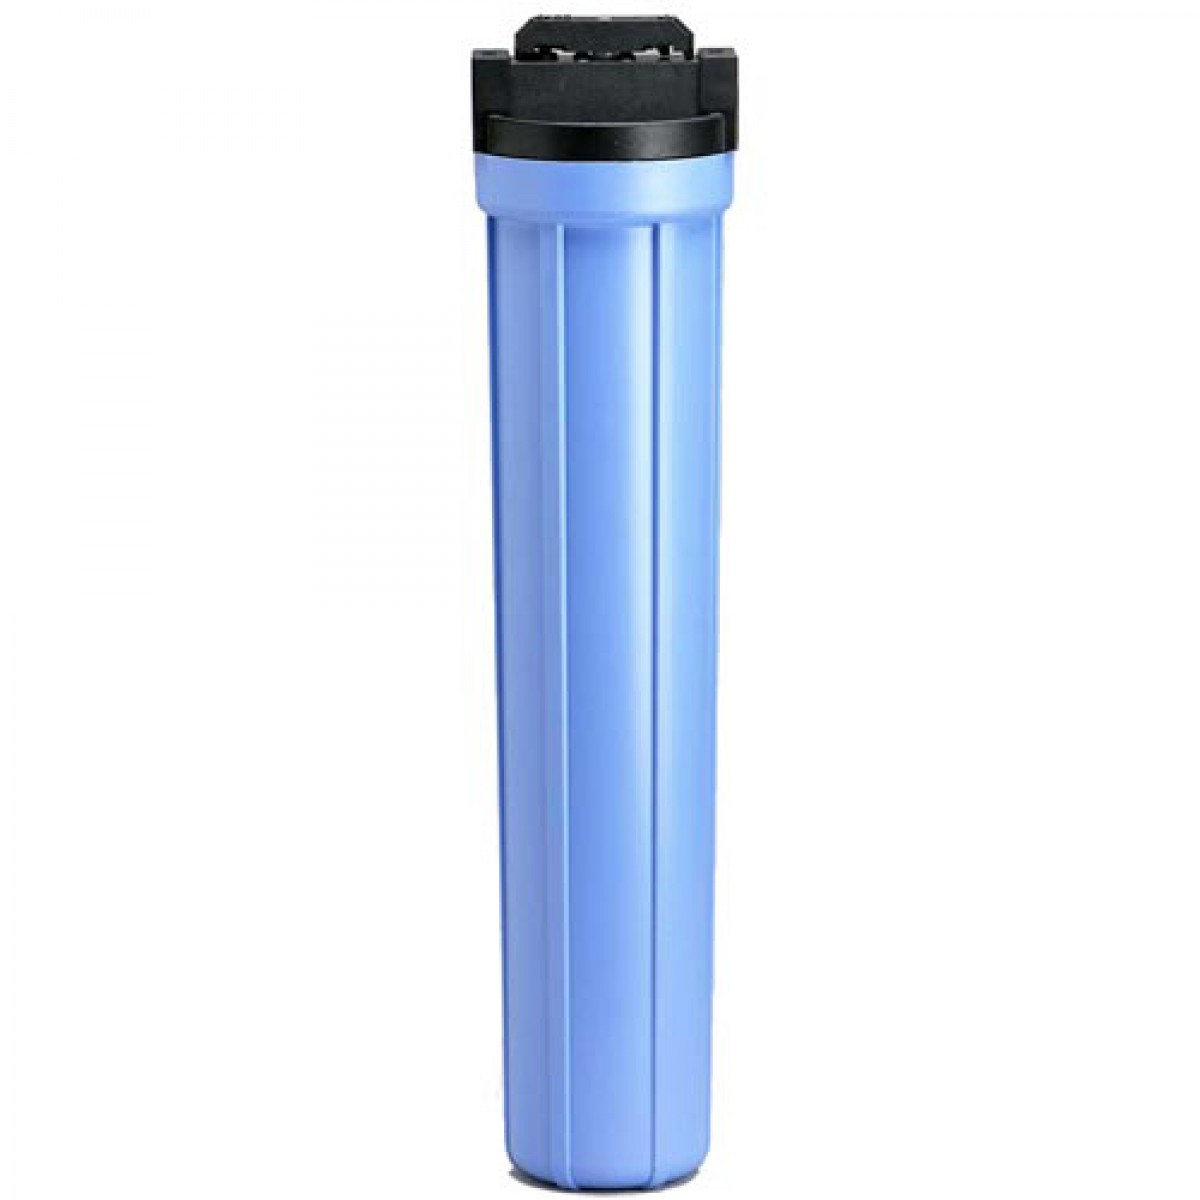 Whole House Filtration Systems Pentek 150166 Whole House Water Filter System